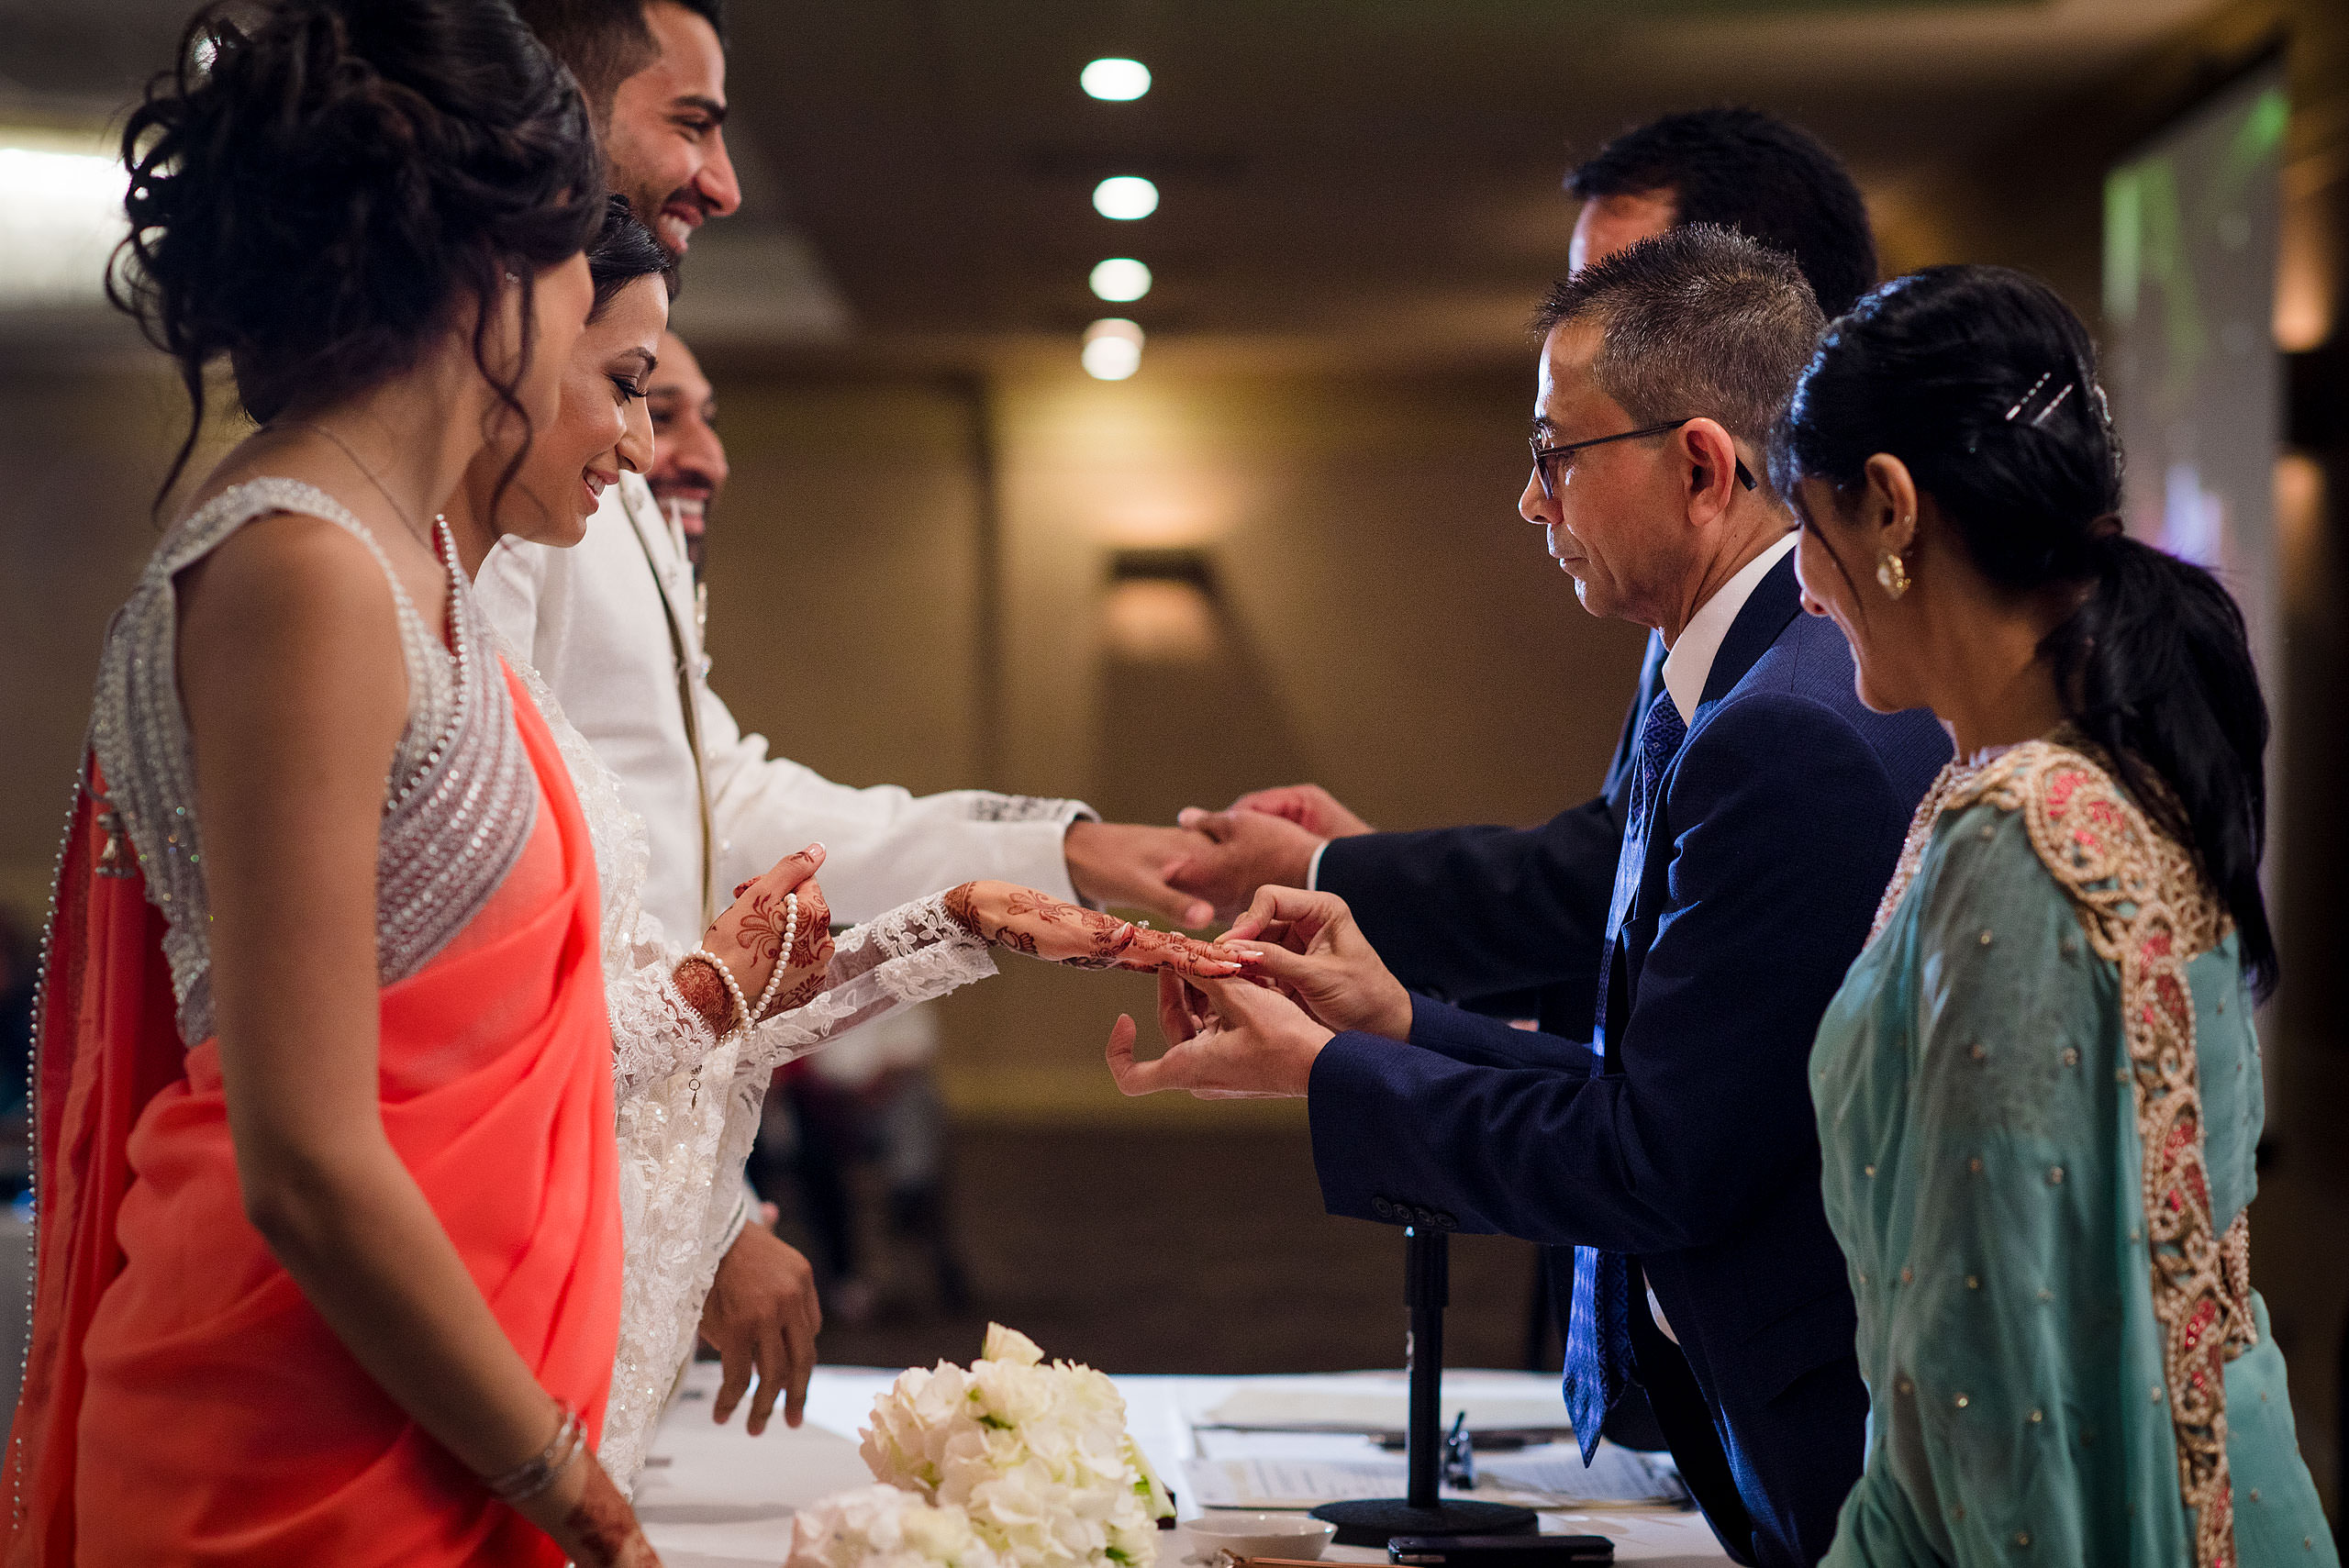 a group of people exchanging rings by Calgary Banff Wedding Photographer Sean LeBlanc